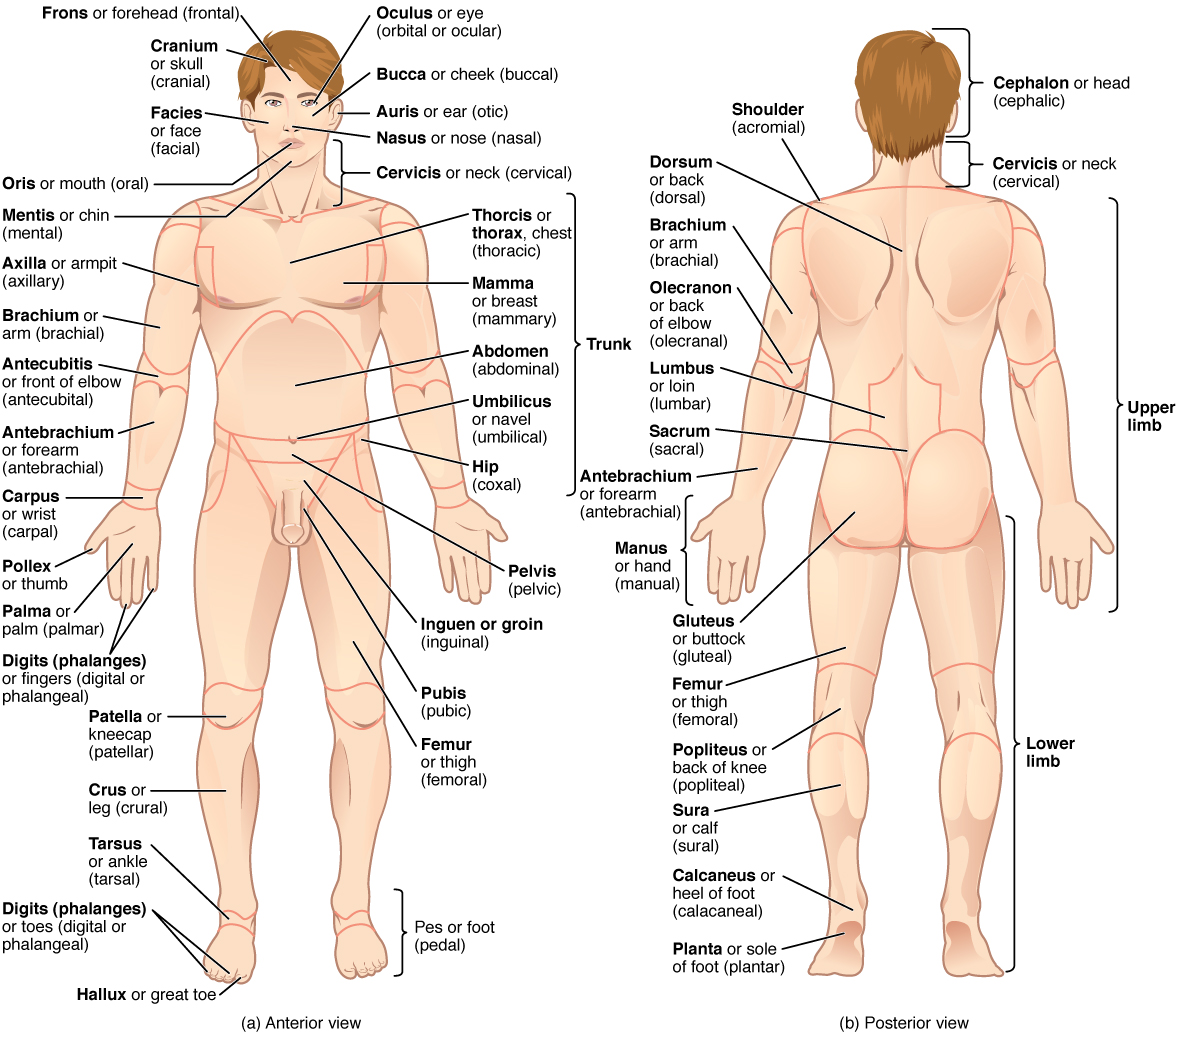 Anatomical Terminology – Anatomical Terminology Worksheet